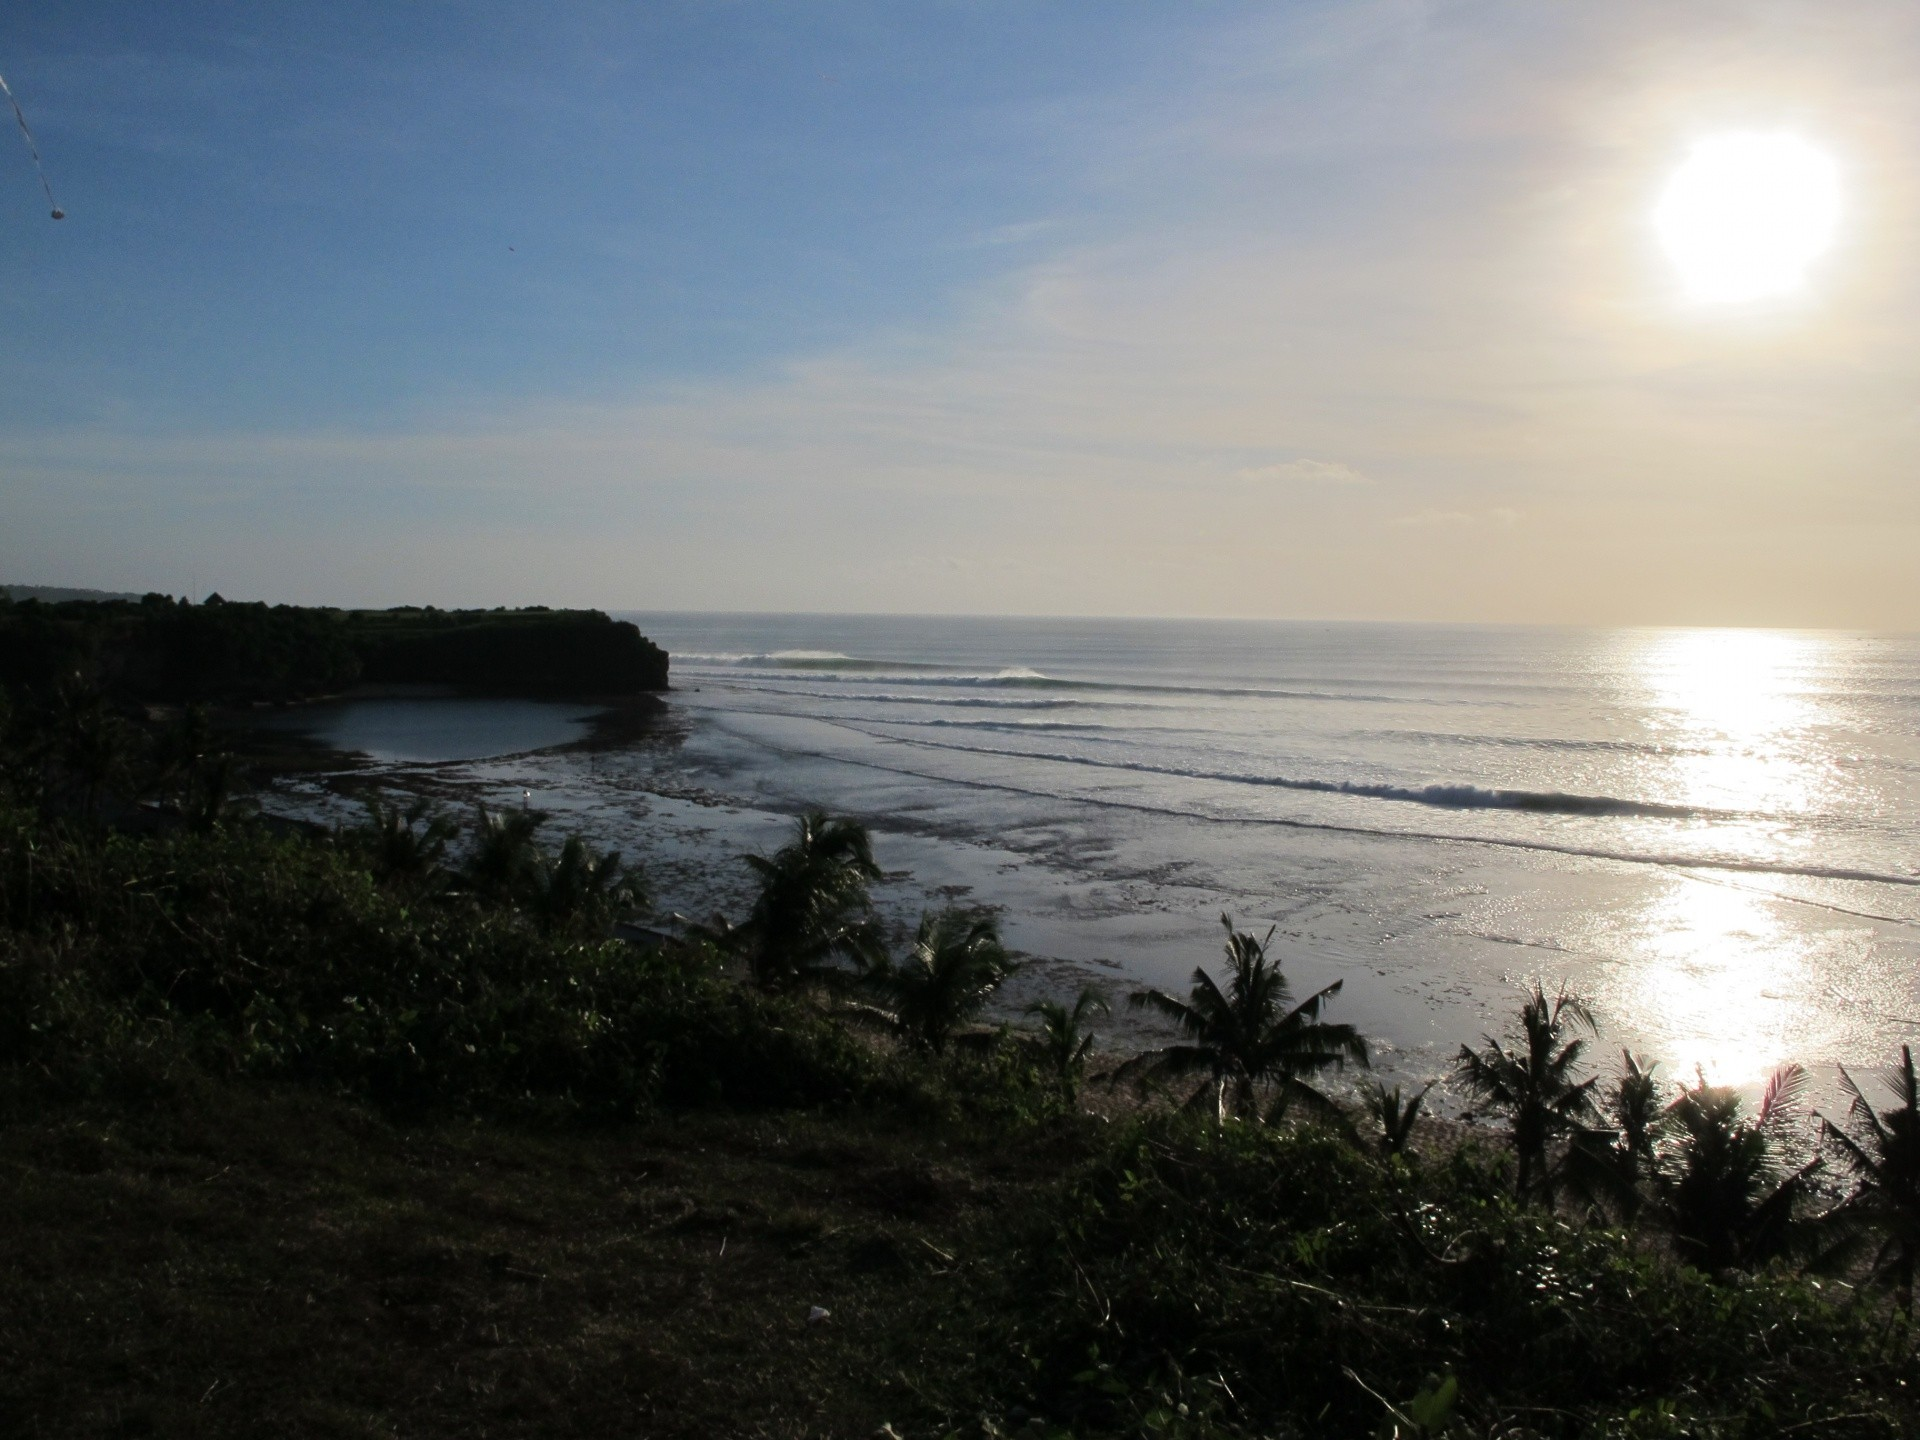 bali_trader's photo of Balangan